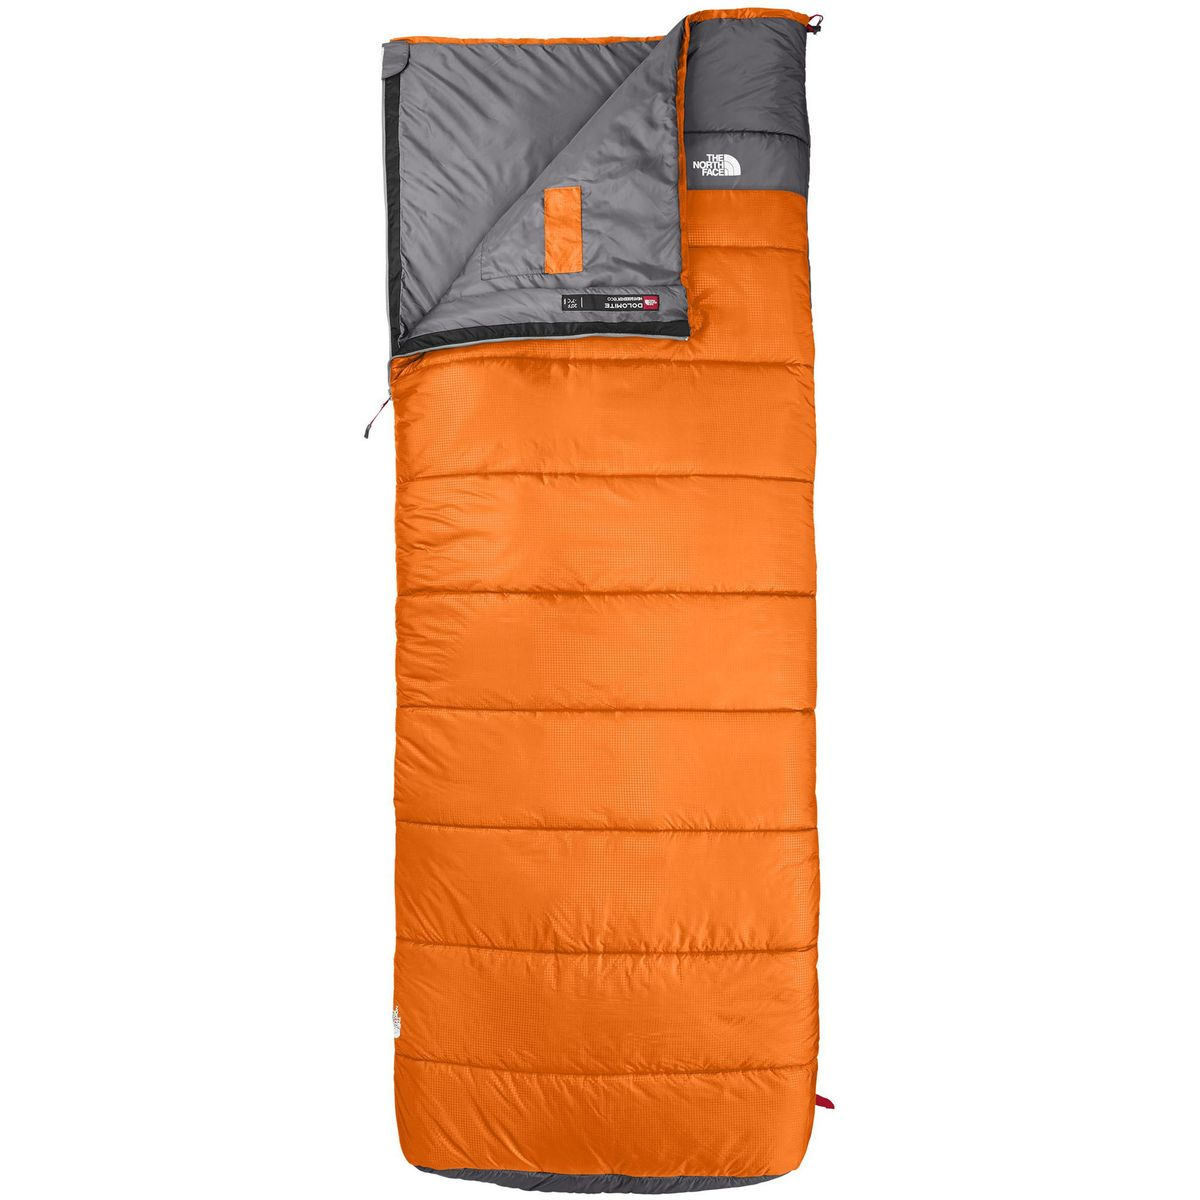 North Face Dolomite Sleeping Bag